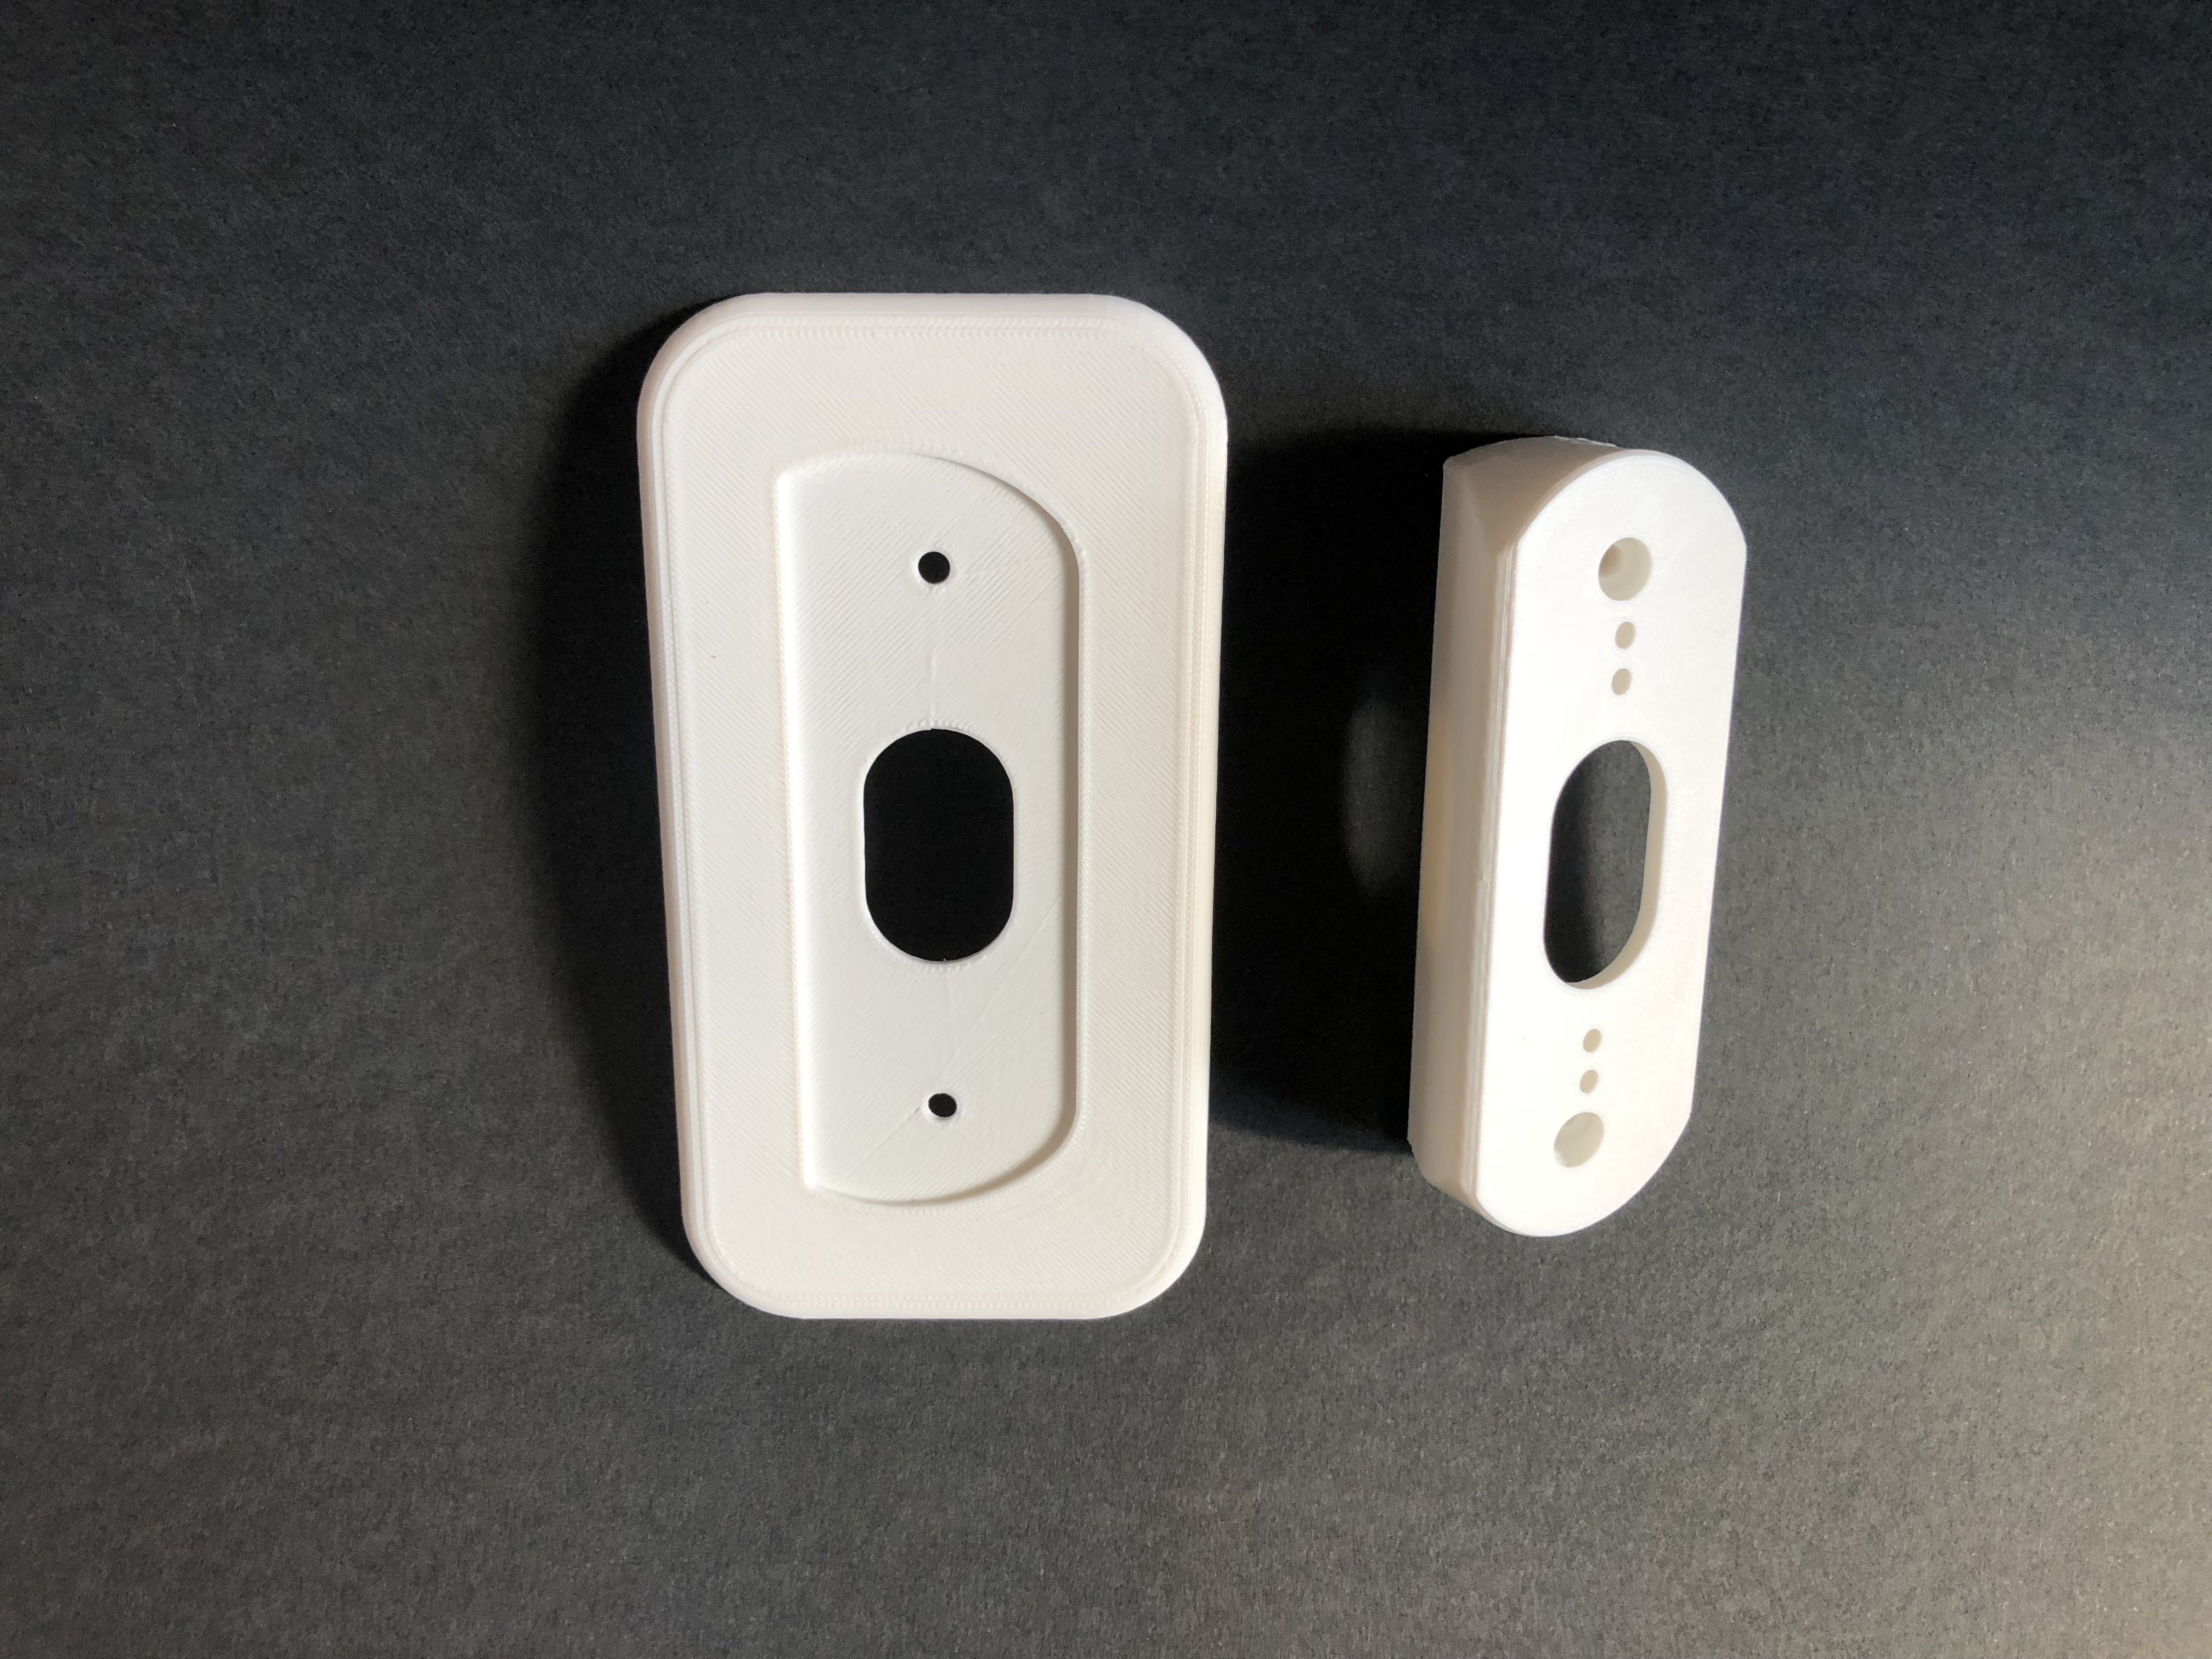 How To Mount Ring Doorbell On Uneven Surface